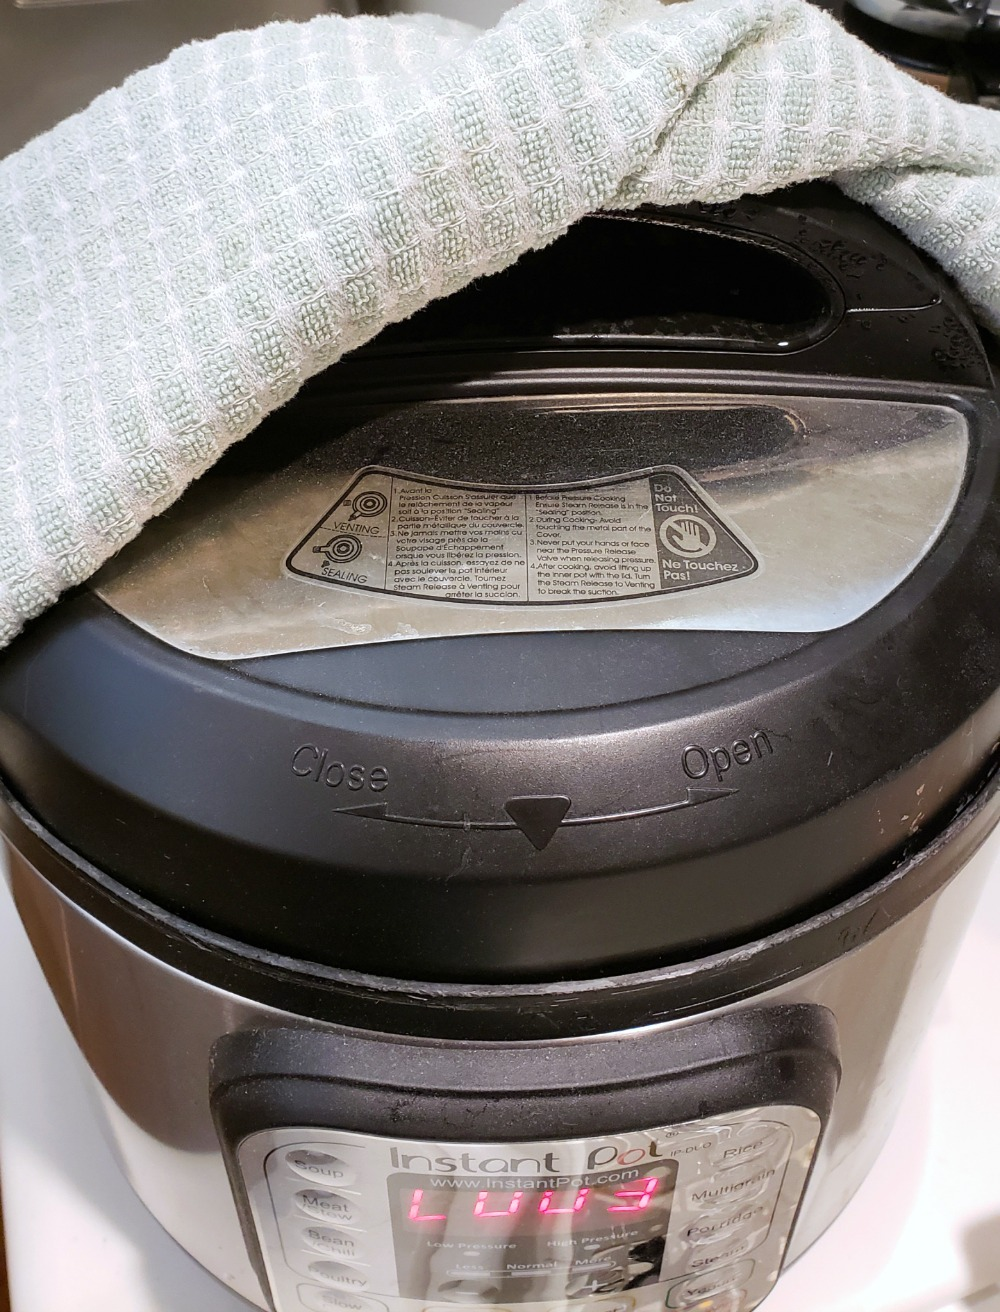 Towel over the steam vent on the Instant Pot